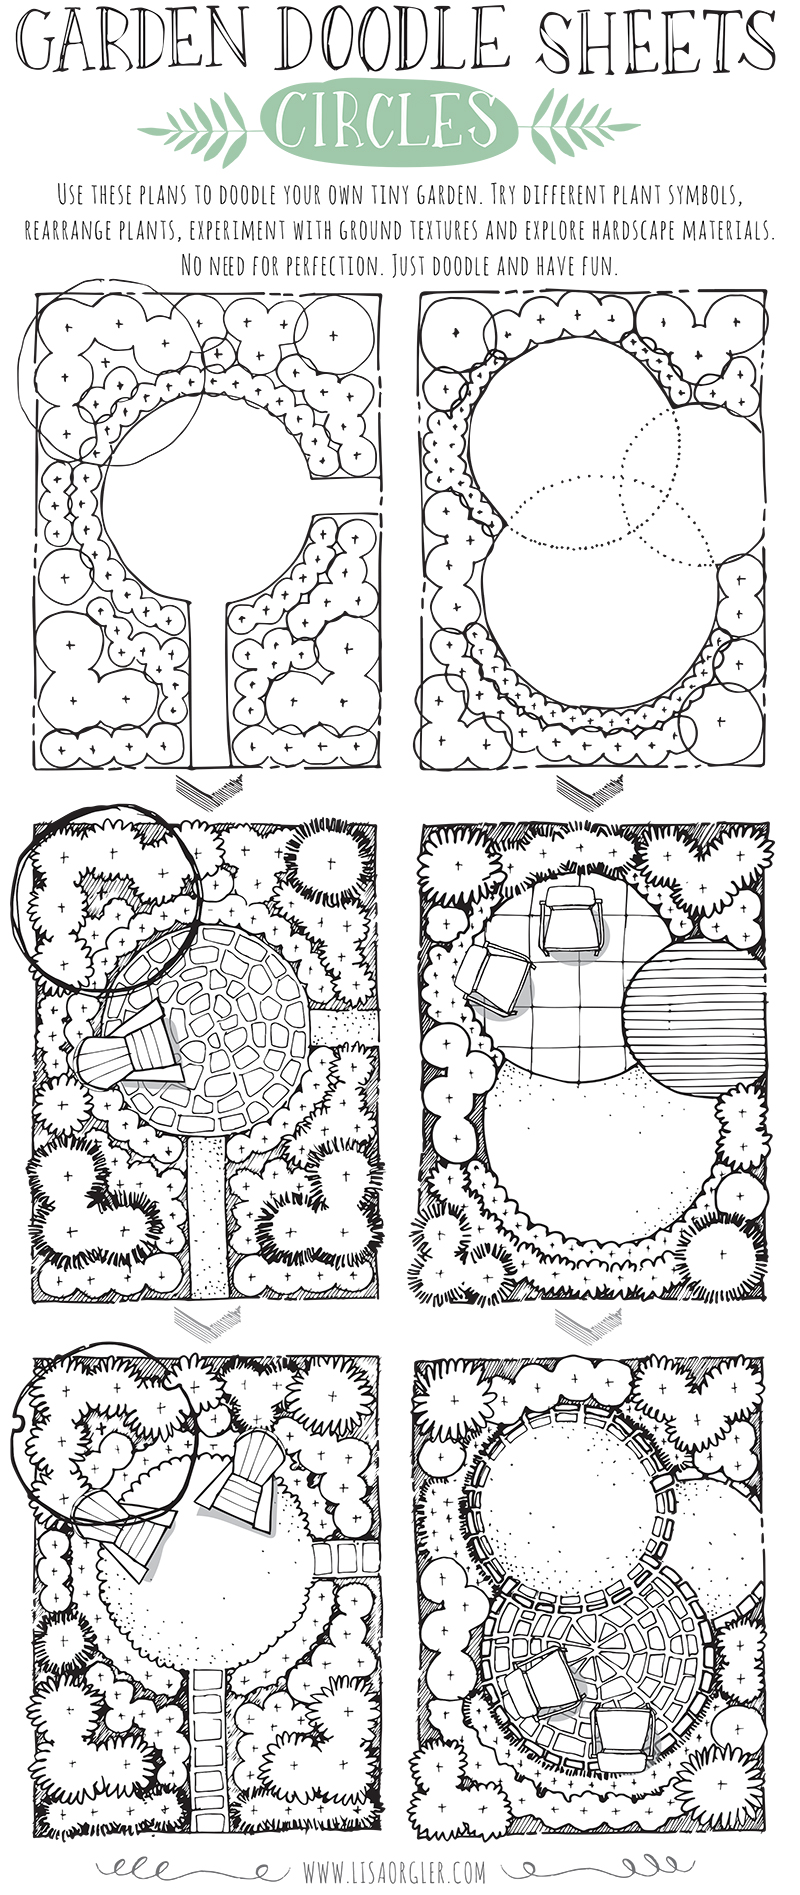 both plans incorporate the circle as the main structure how would you create a tiny garden with a circle theme click on the image below to download a pdf